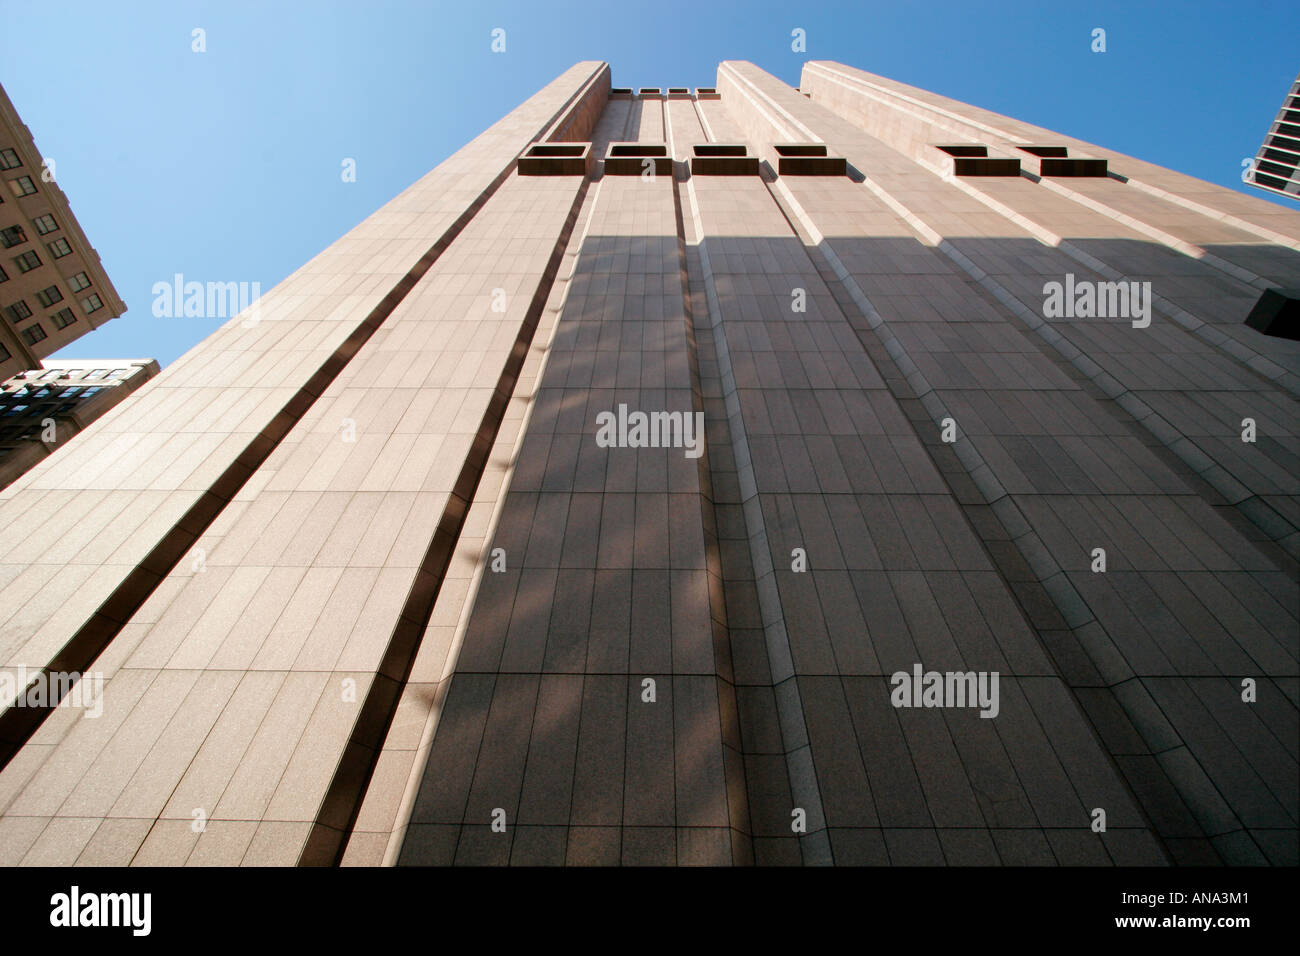 Die AT&T Gebäude in Tribeca, New York. Stockbild